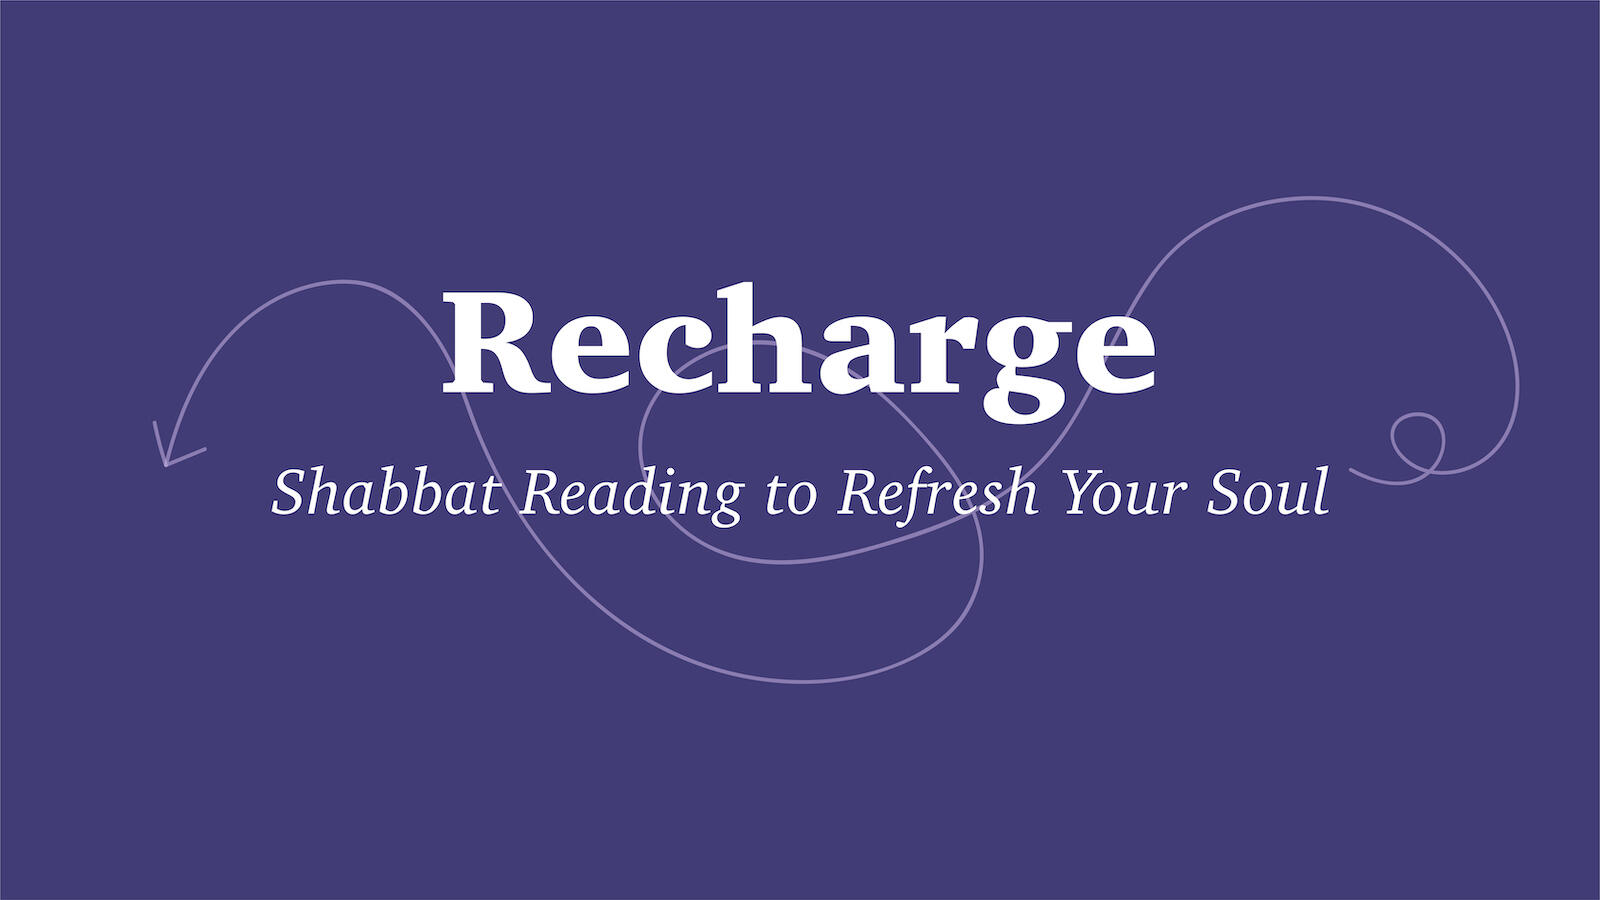 """Recharge"""" Shabbat readings to refresh your soul"""